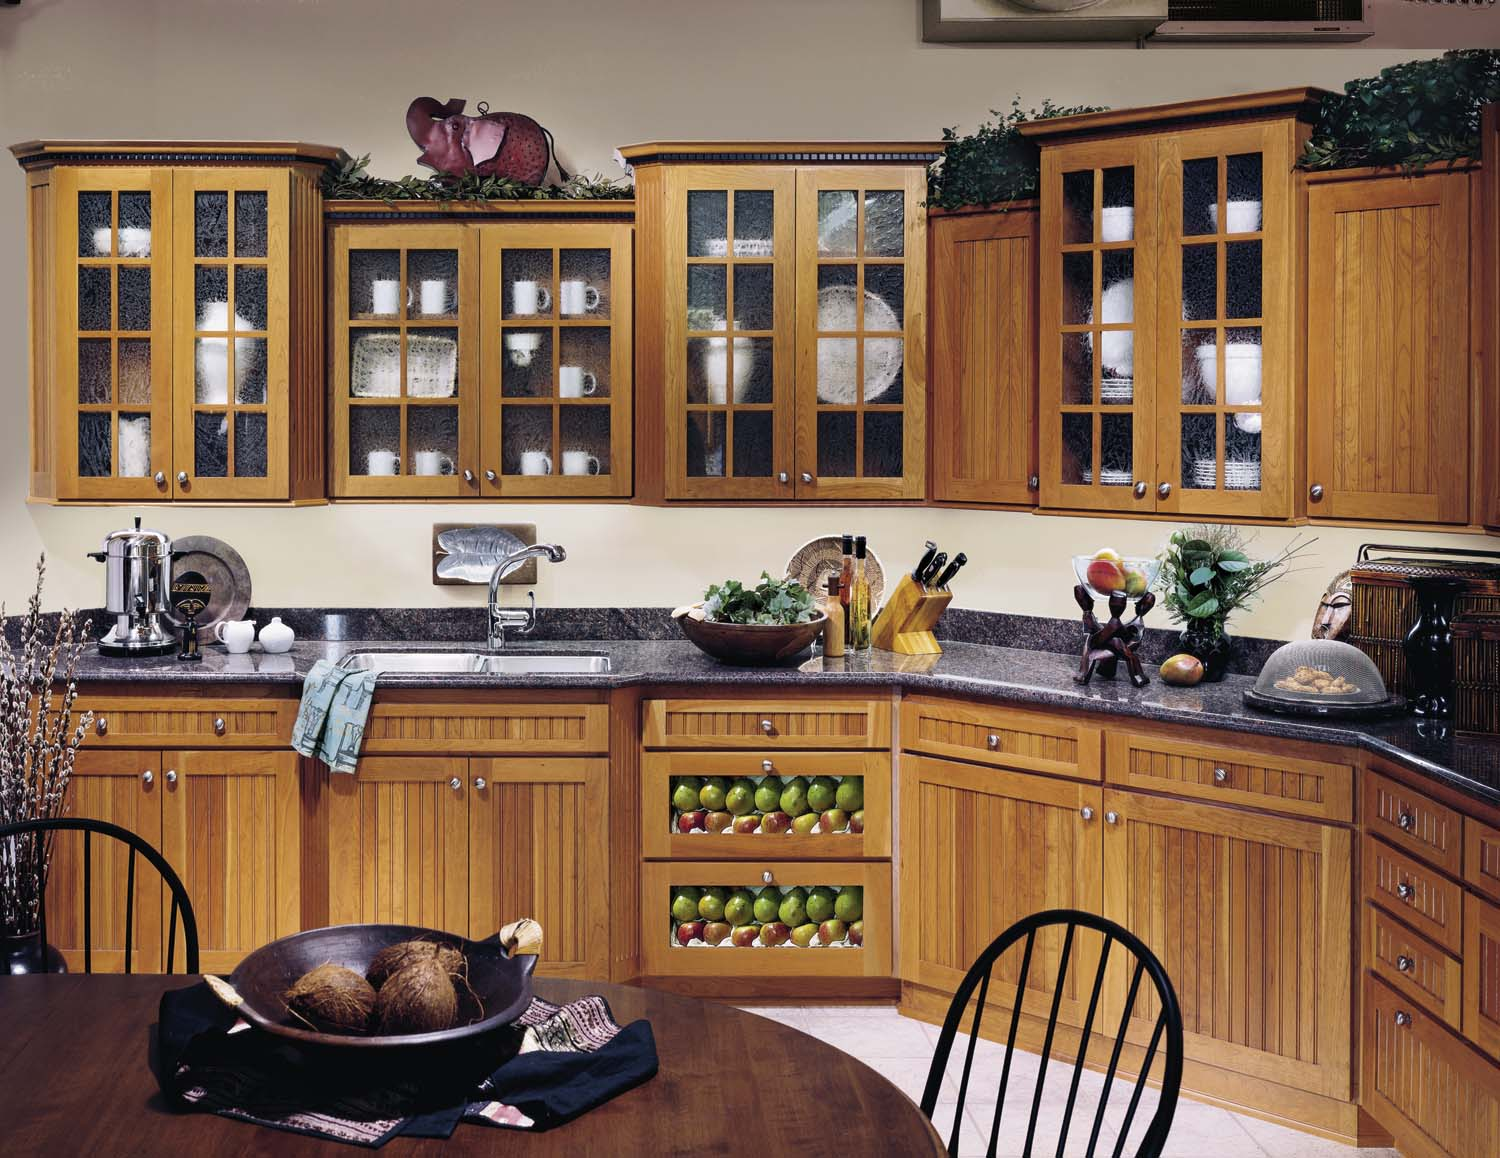 1000 options in kitchen cabinets how to choose best for for Best kitchen cabinets